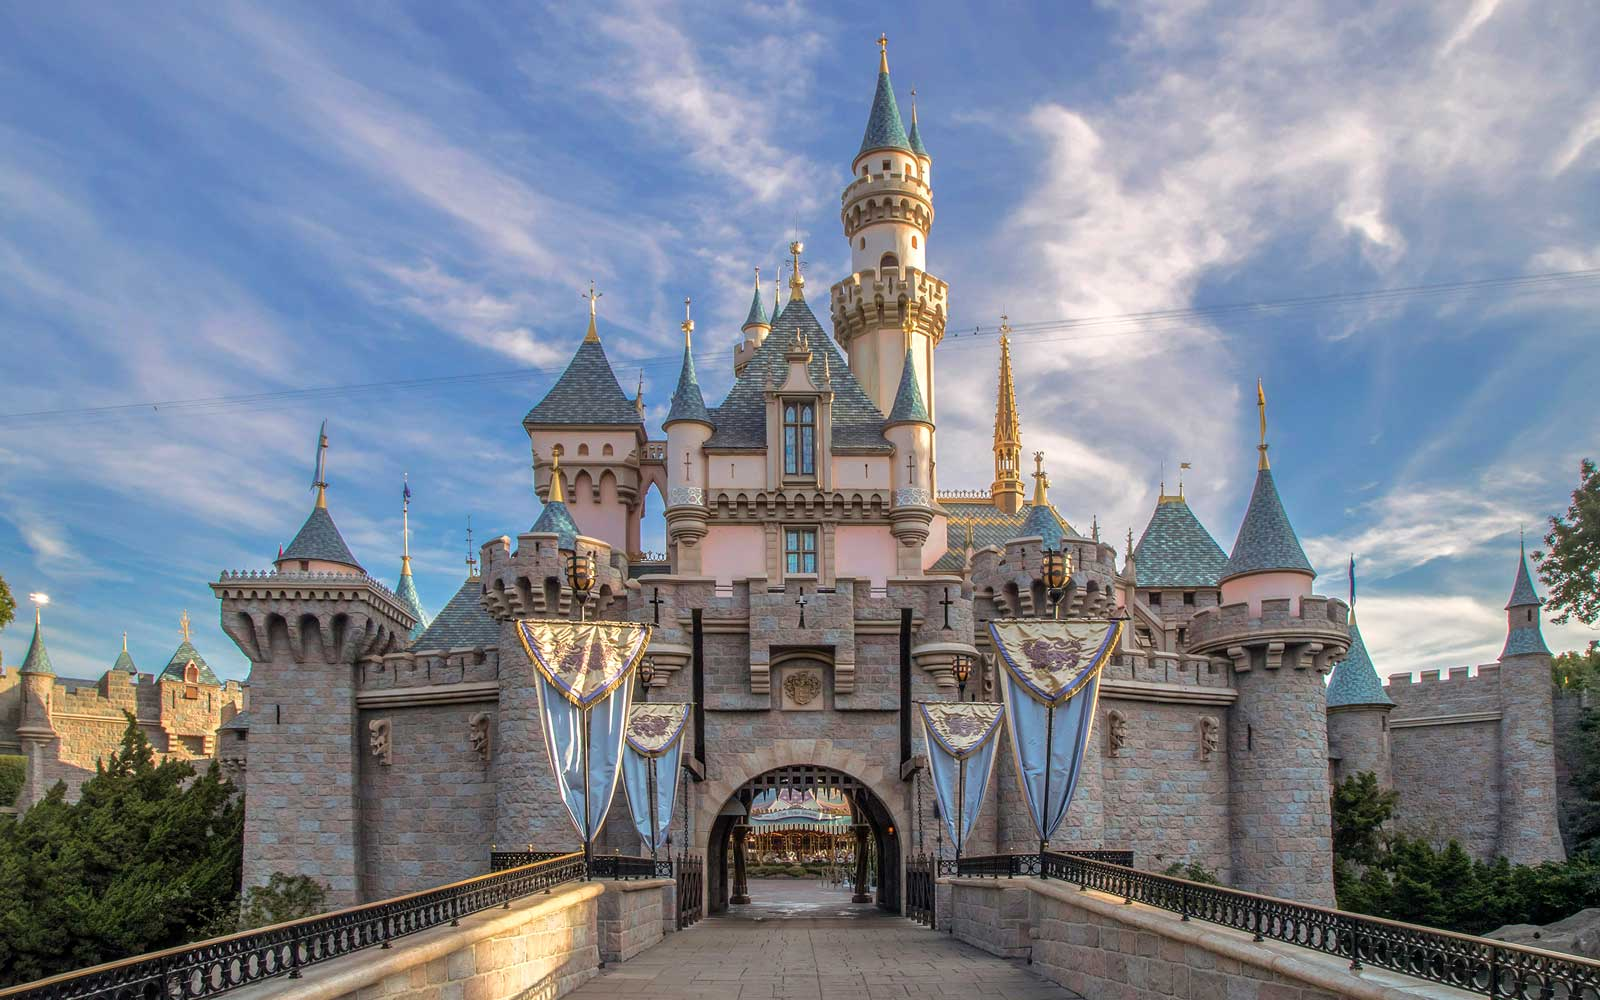 The Cheapest Disneyland Ticket Is Now Over $100 Thanks to an Unexpected Price Hike